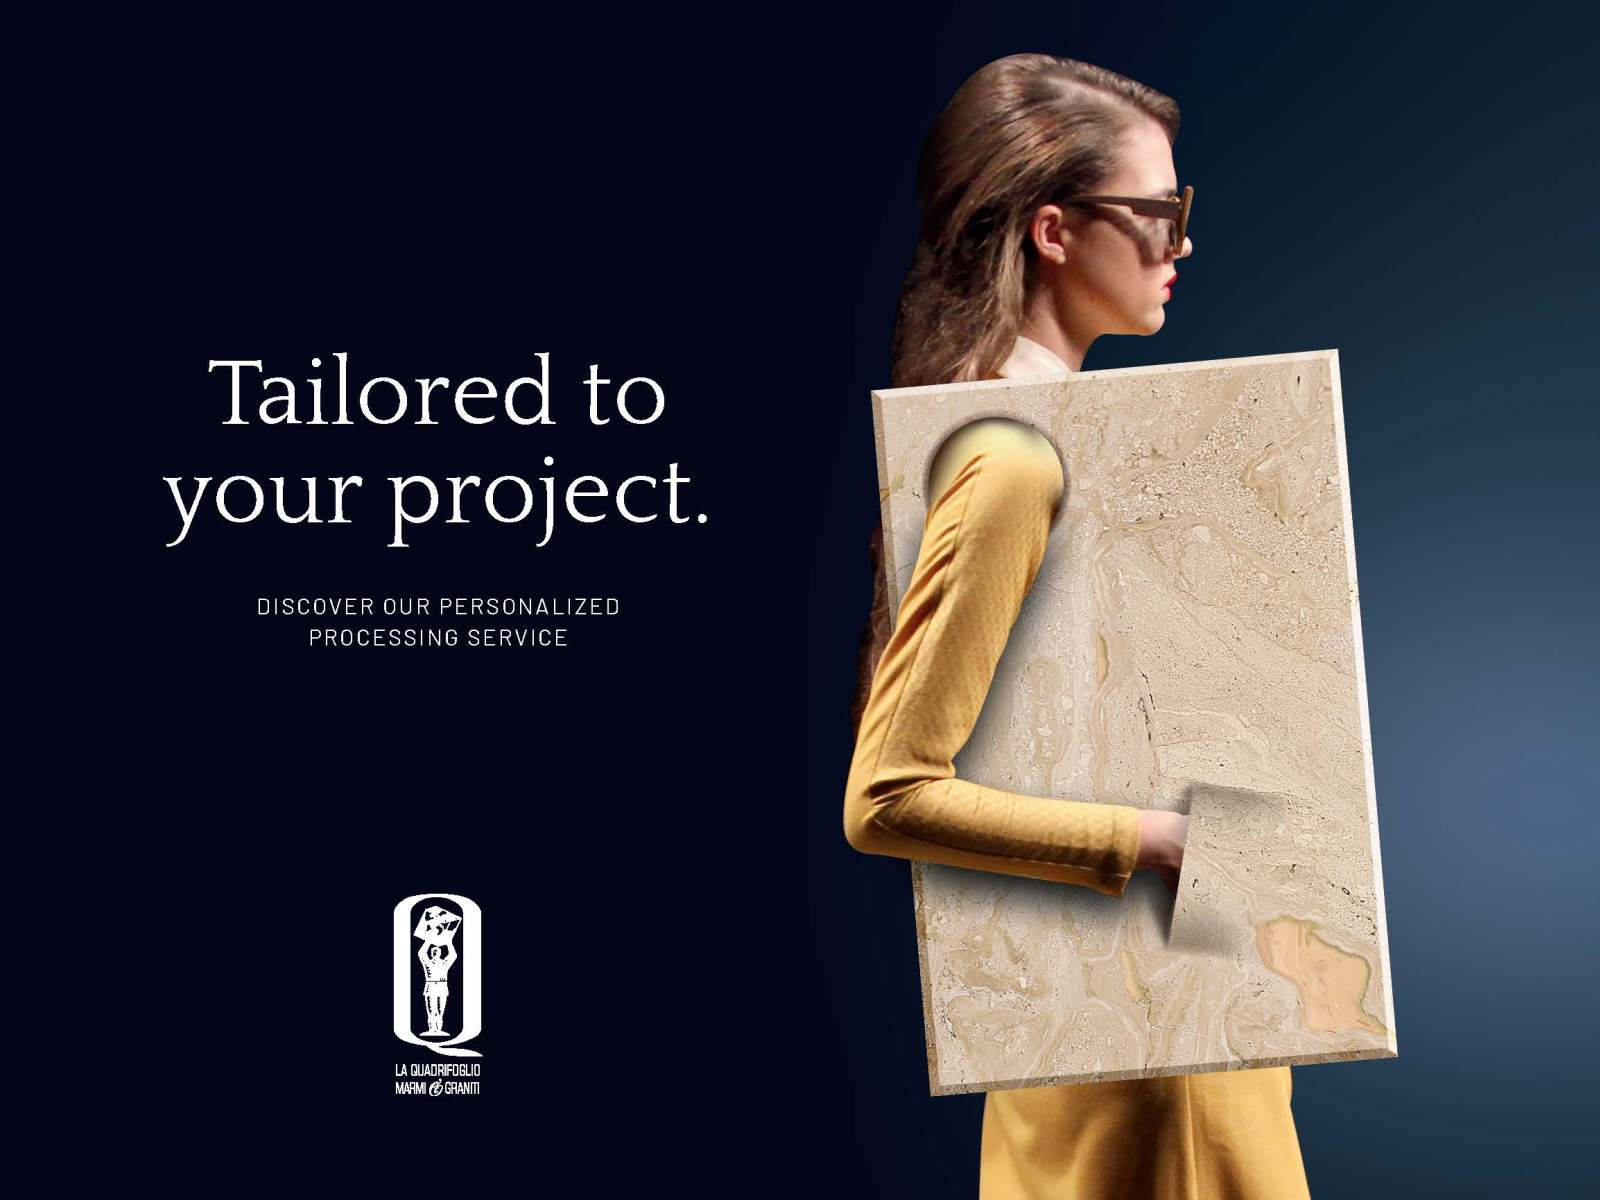 Tailored to your project.